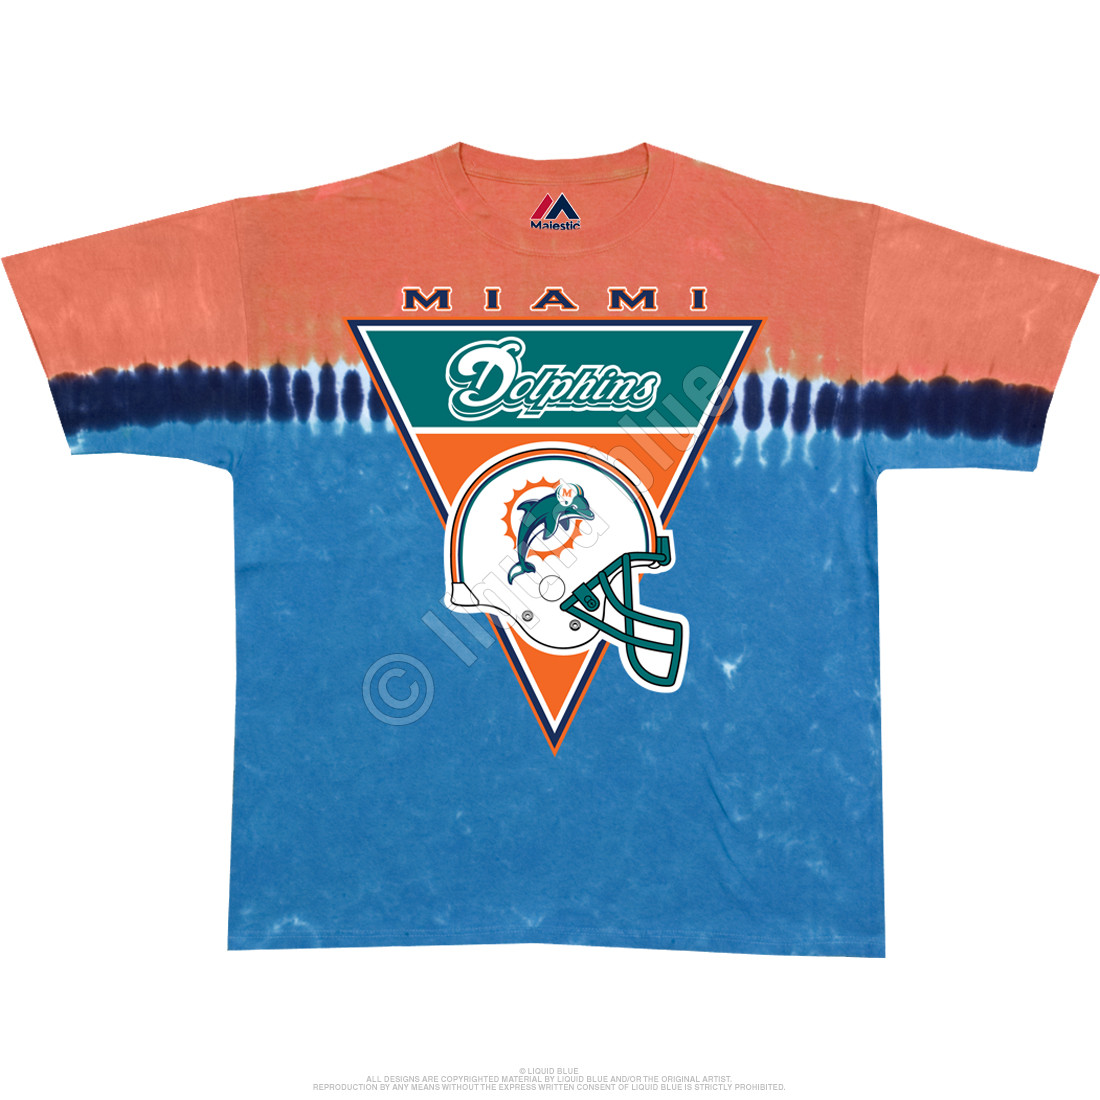 Nfl miami dolphins logo banner tie dye t shirt tee liquid blue for Dolphins t shirt new logo